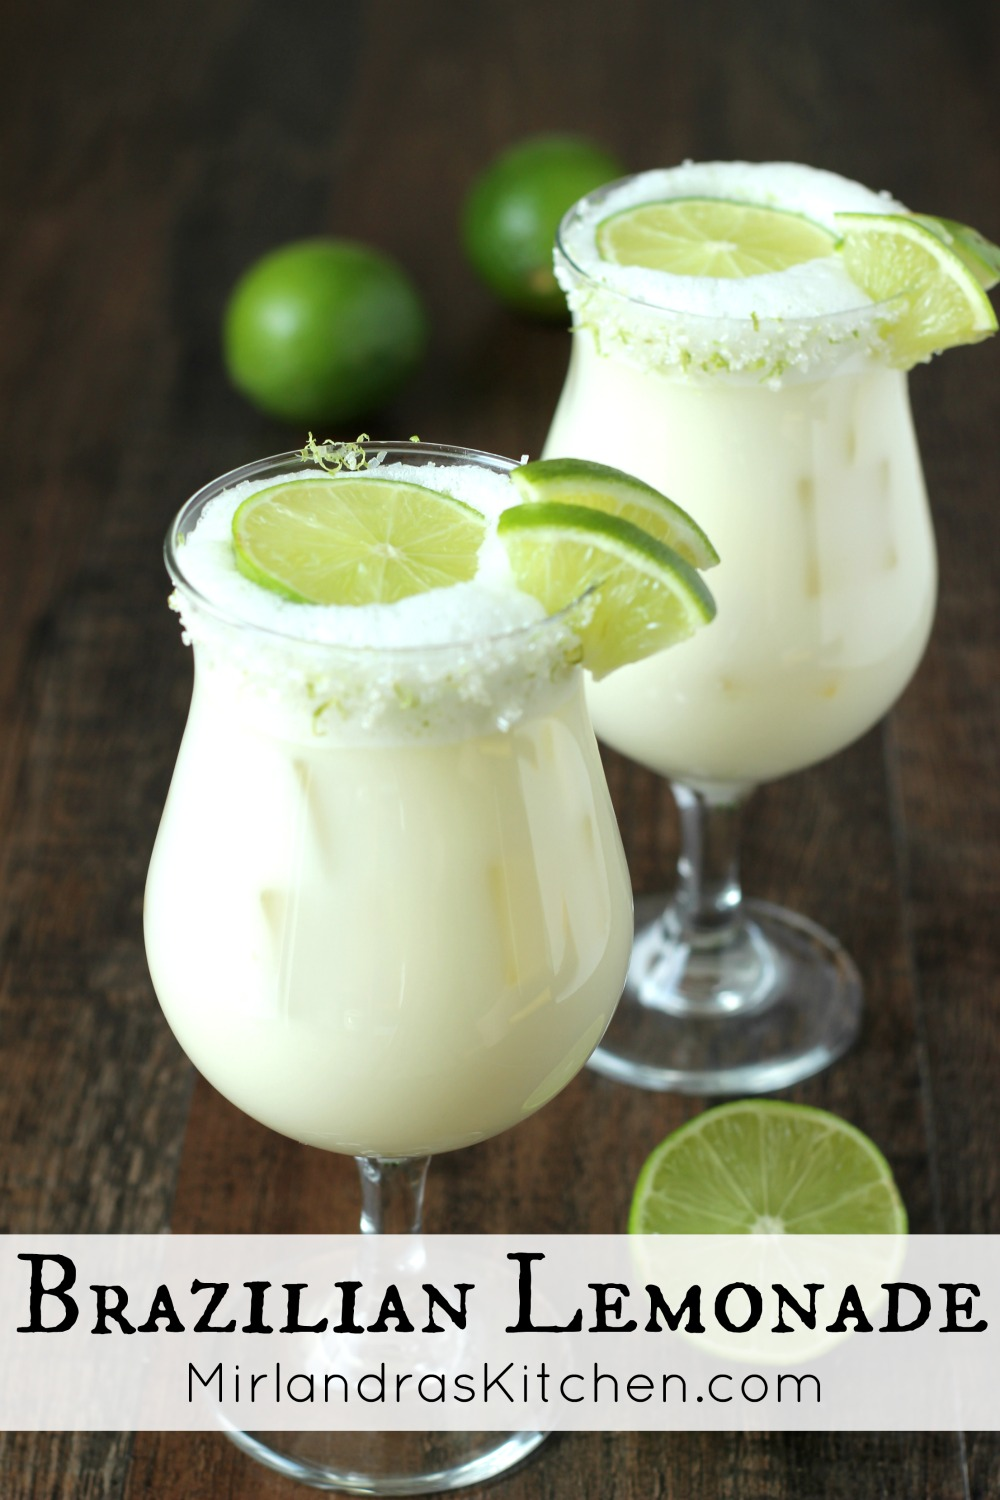 Brazilian Lemonade is a creamy, smooth refreshing lime drink native to Brazil. This version is just like the one Tucanos Brazilian Grill makes!